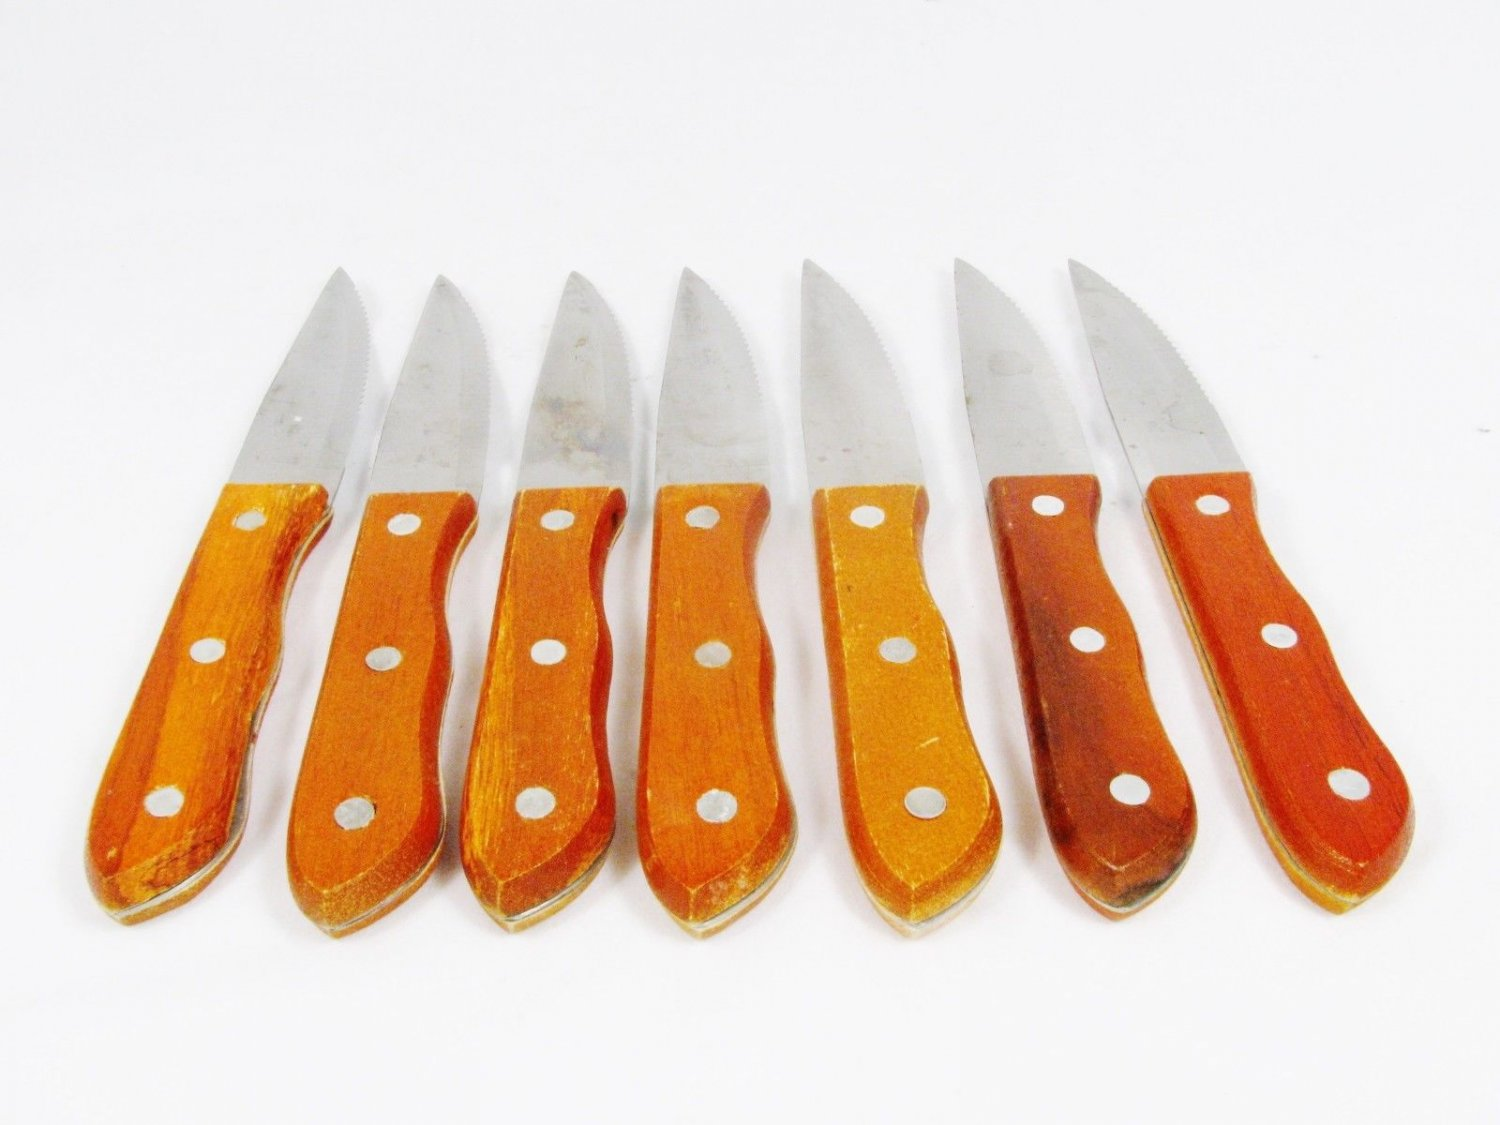 Restaurant Style Stainless Steel Set of 8 Steak Knives Rivetted Wooden Handles Fast Free Ship